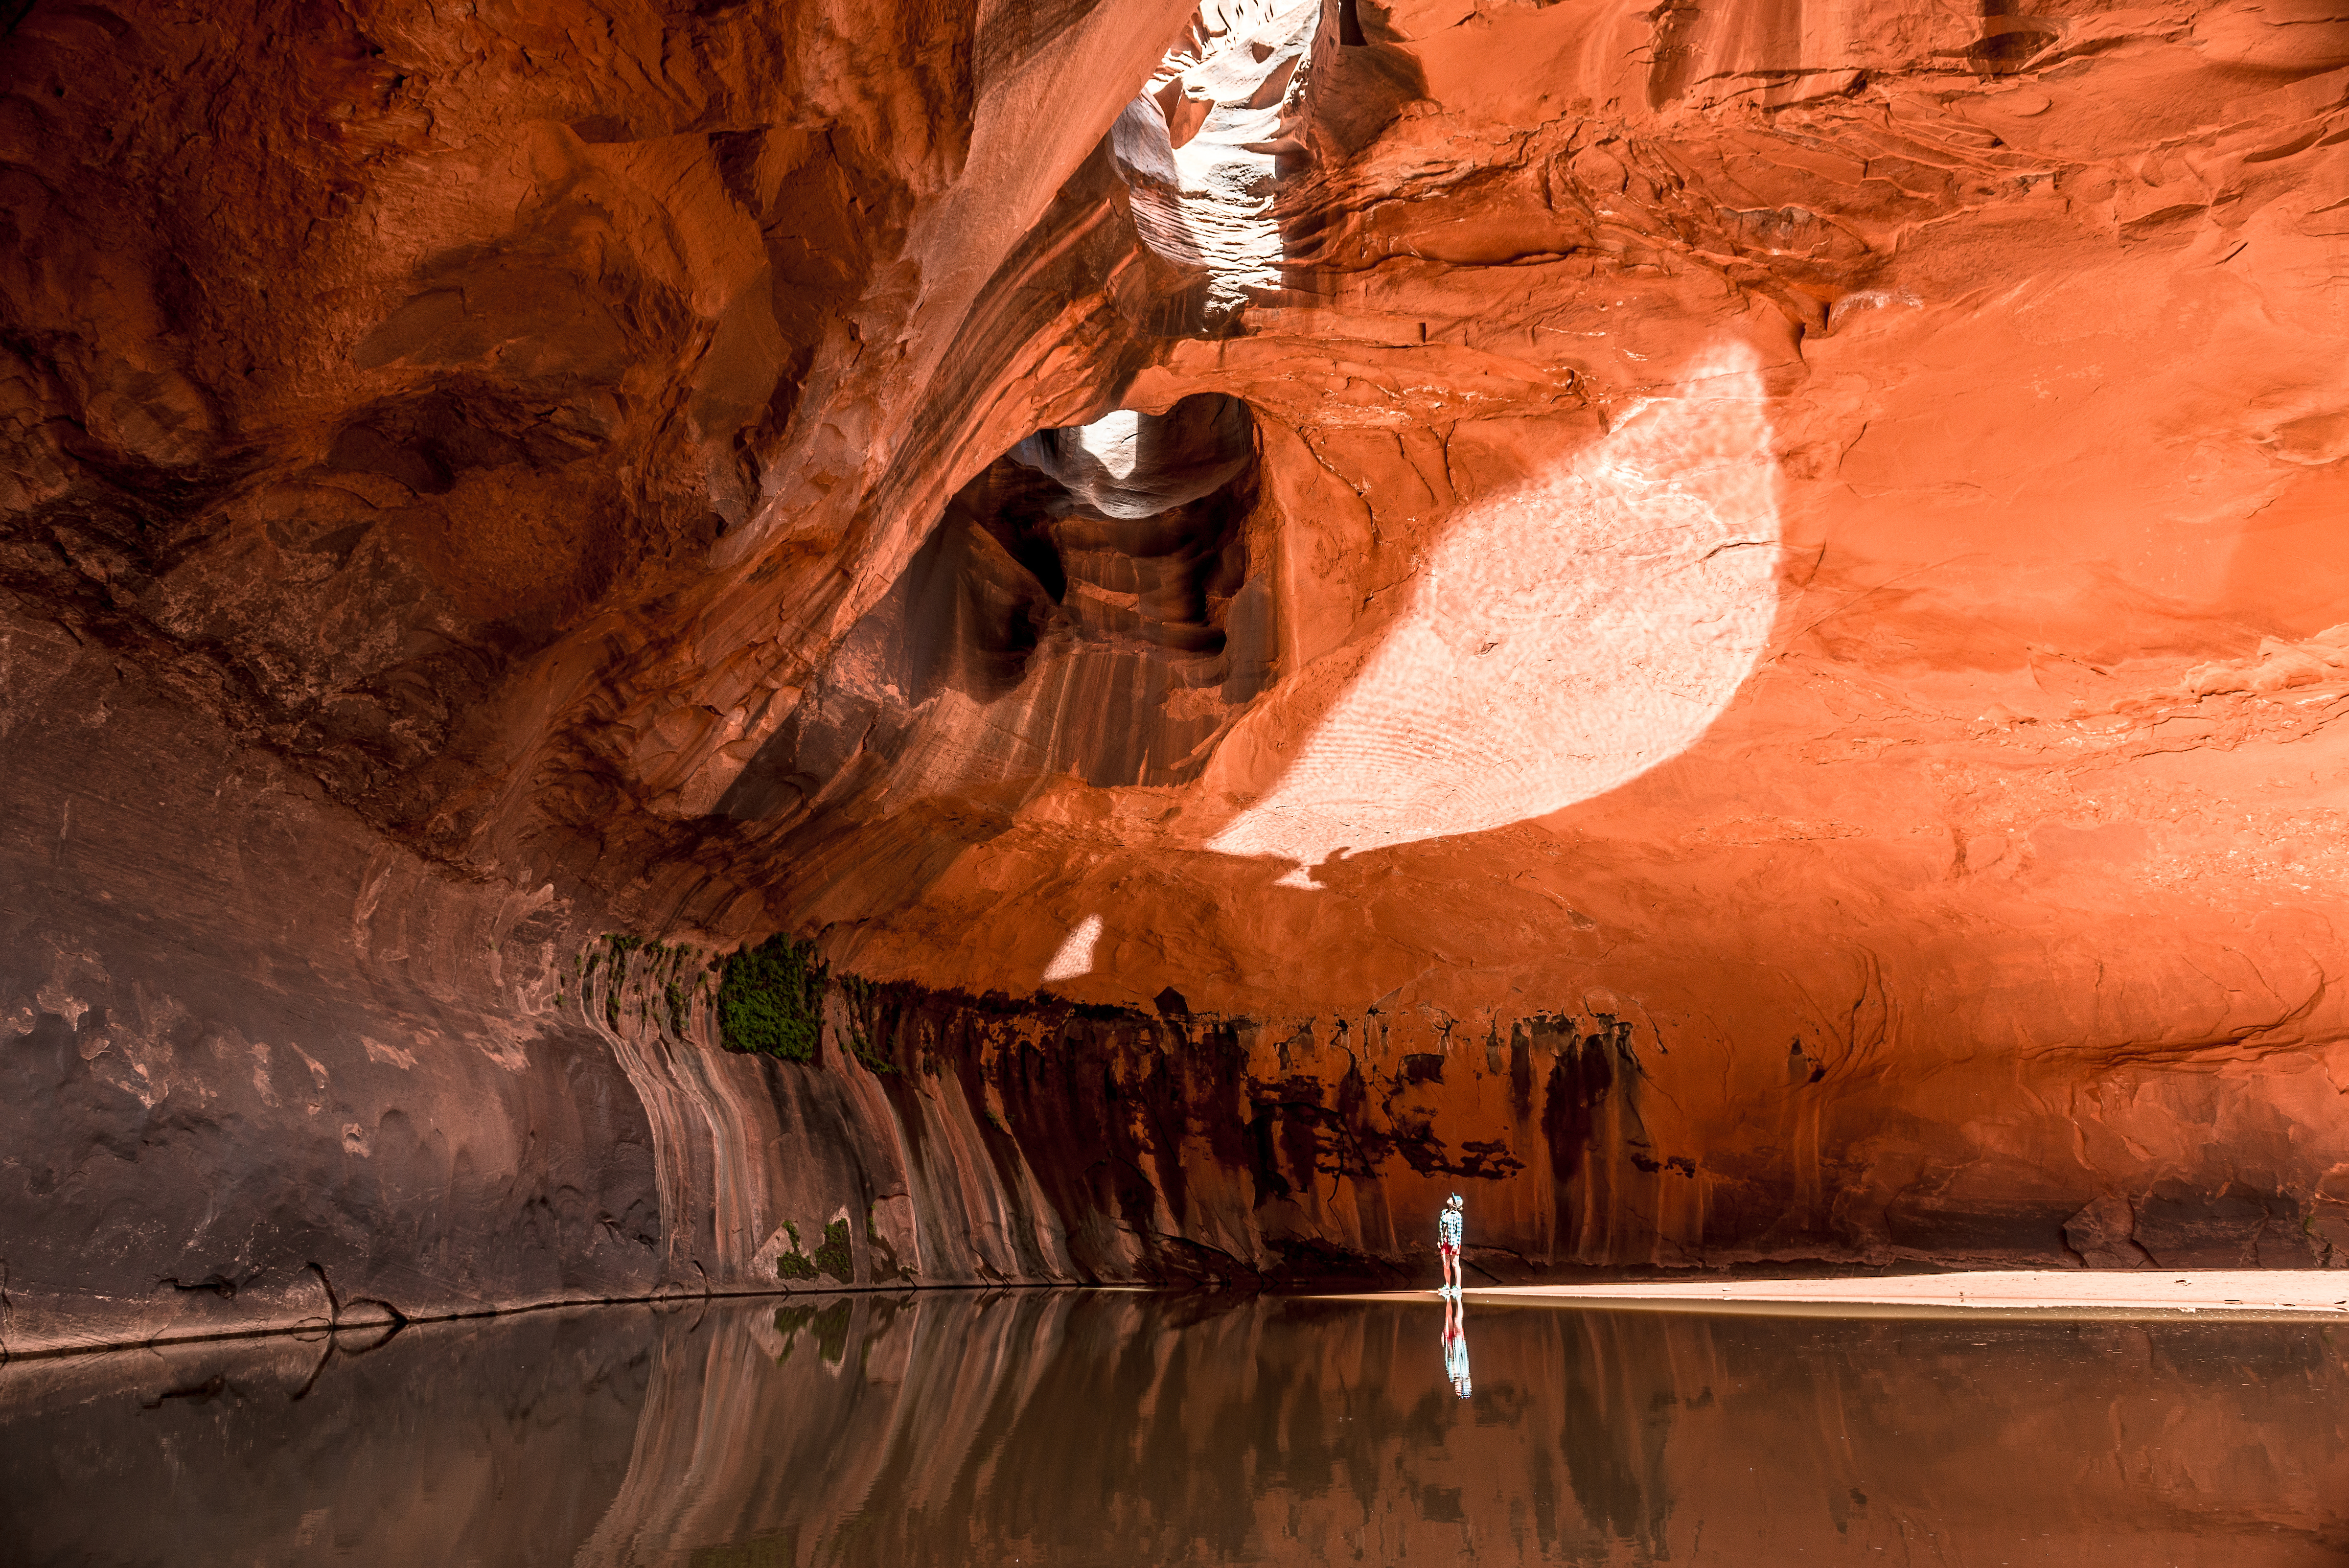 A woman looks up at the Golden Cathedral in Neon Canyon, Escalante, Utah.